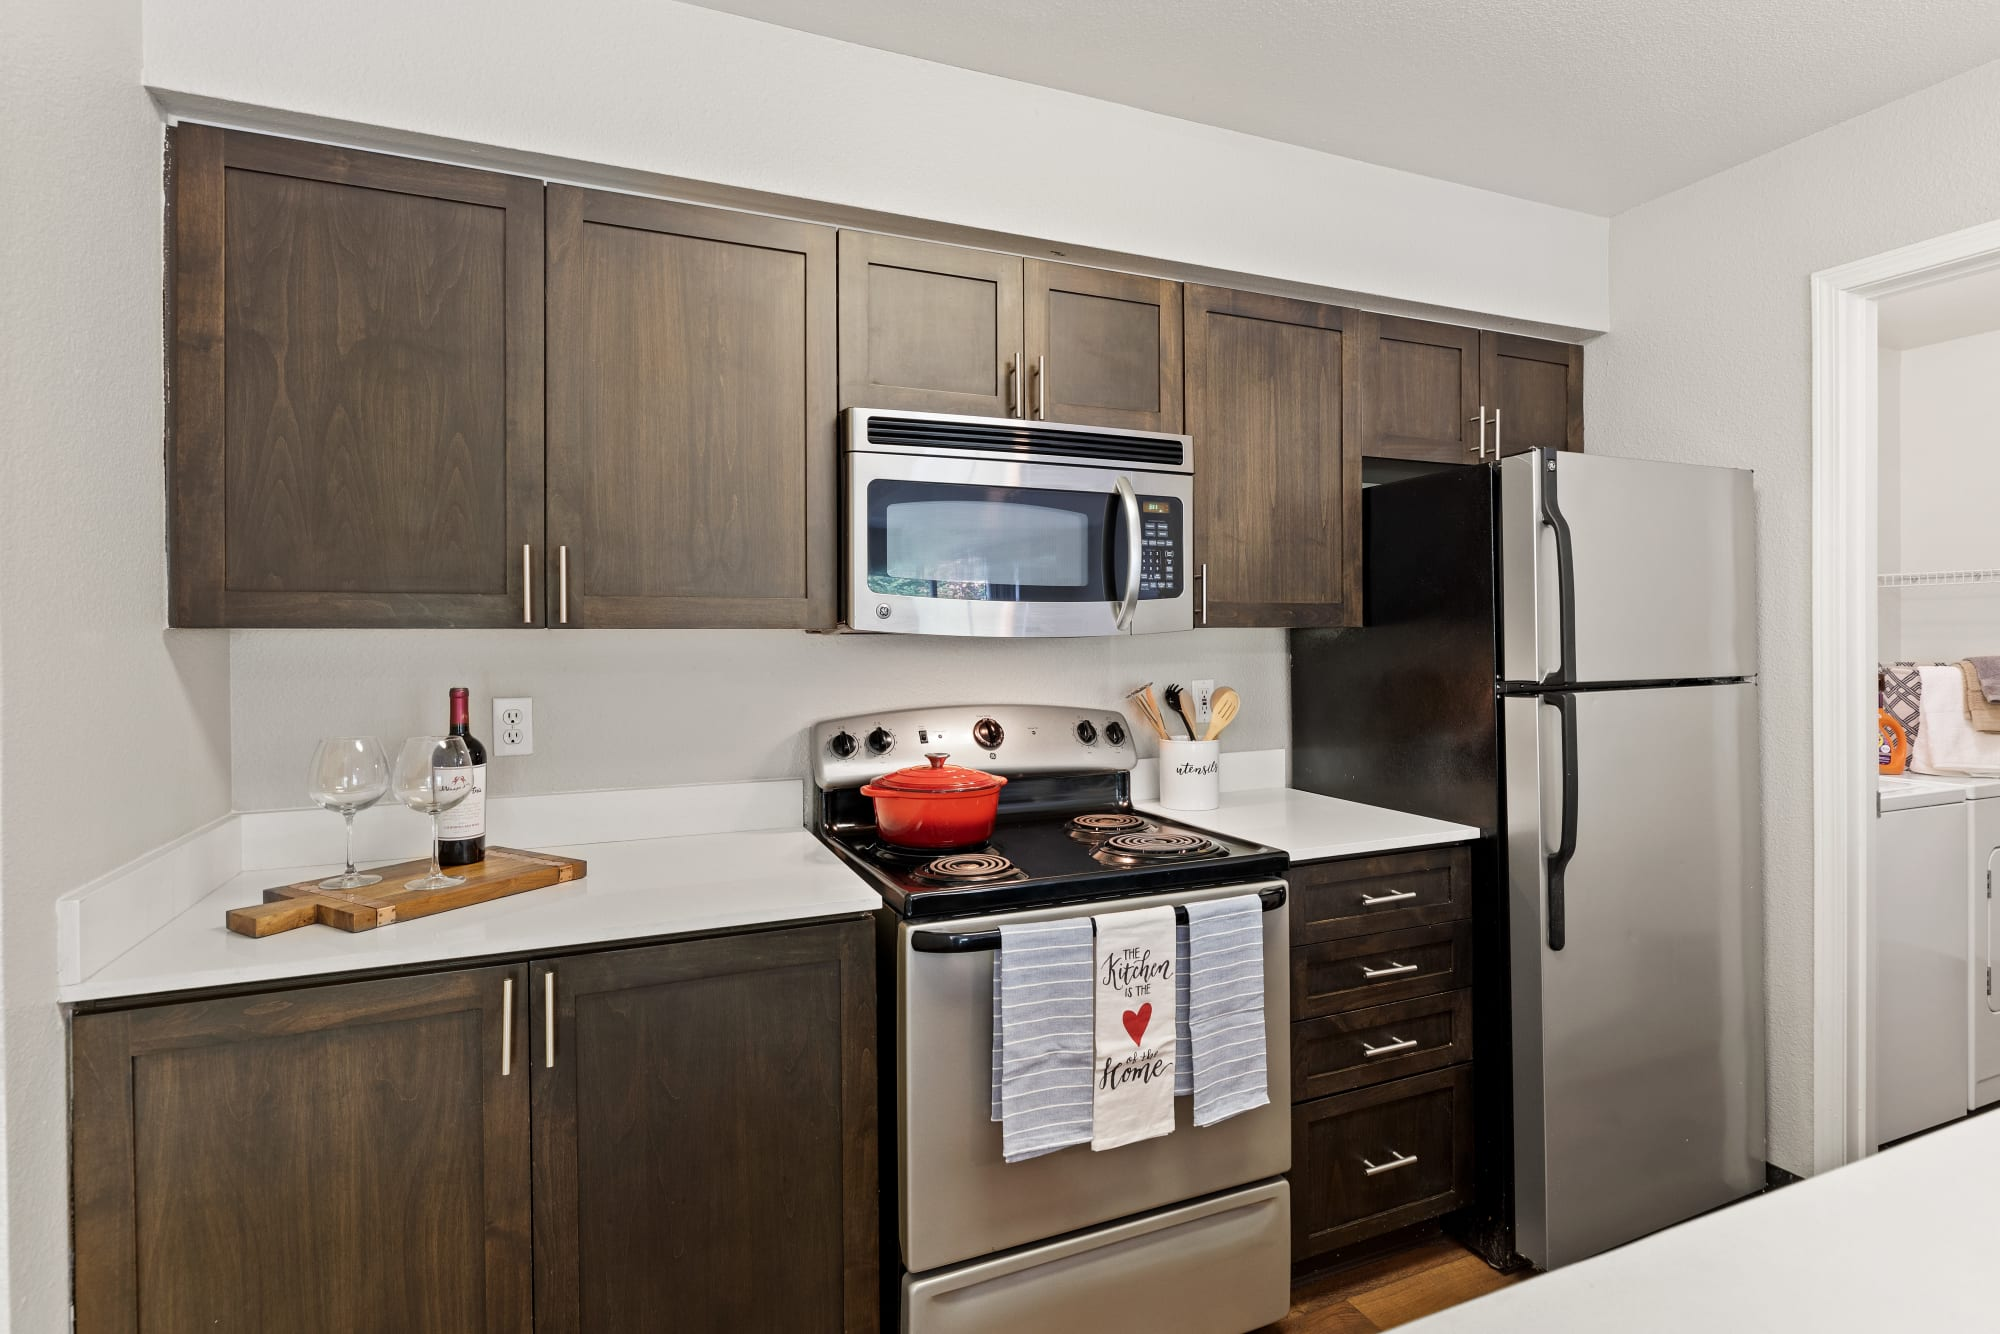 A renovated kitchen with brown cabinets and a bar area at HighGrove Apartments in Everett, Washington